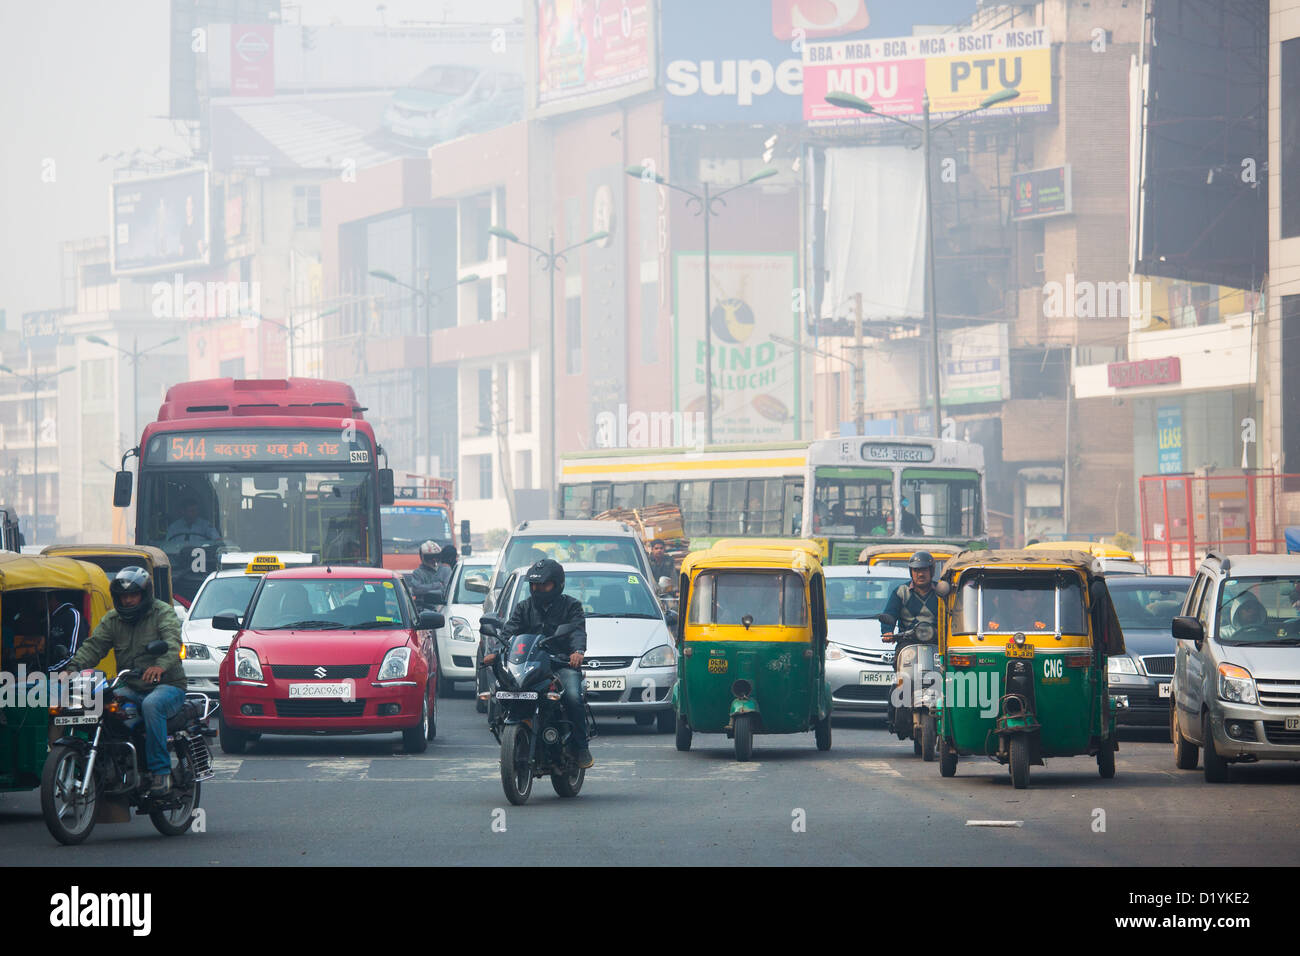 South extention, traffic and air pollution, Delhi, India - Stock Image